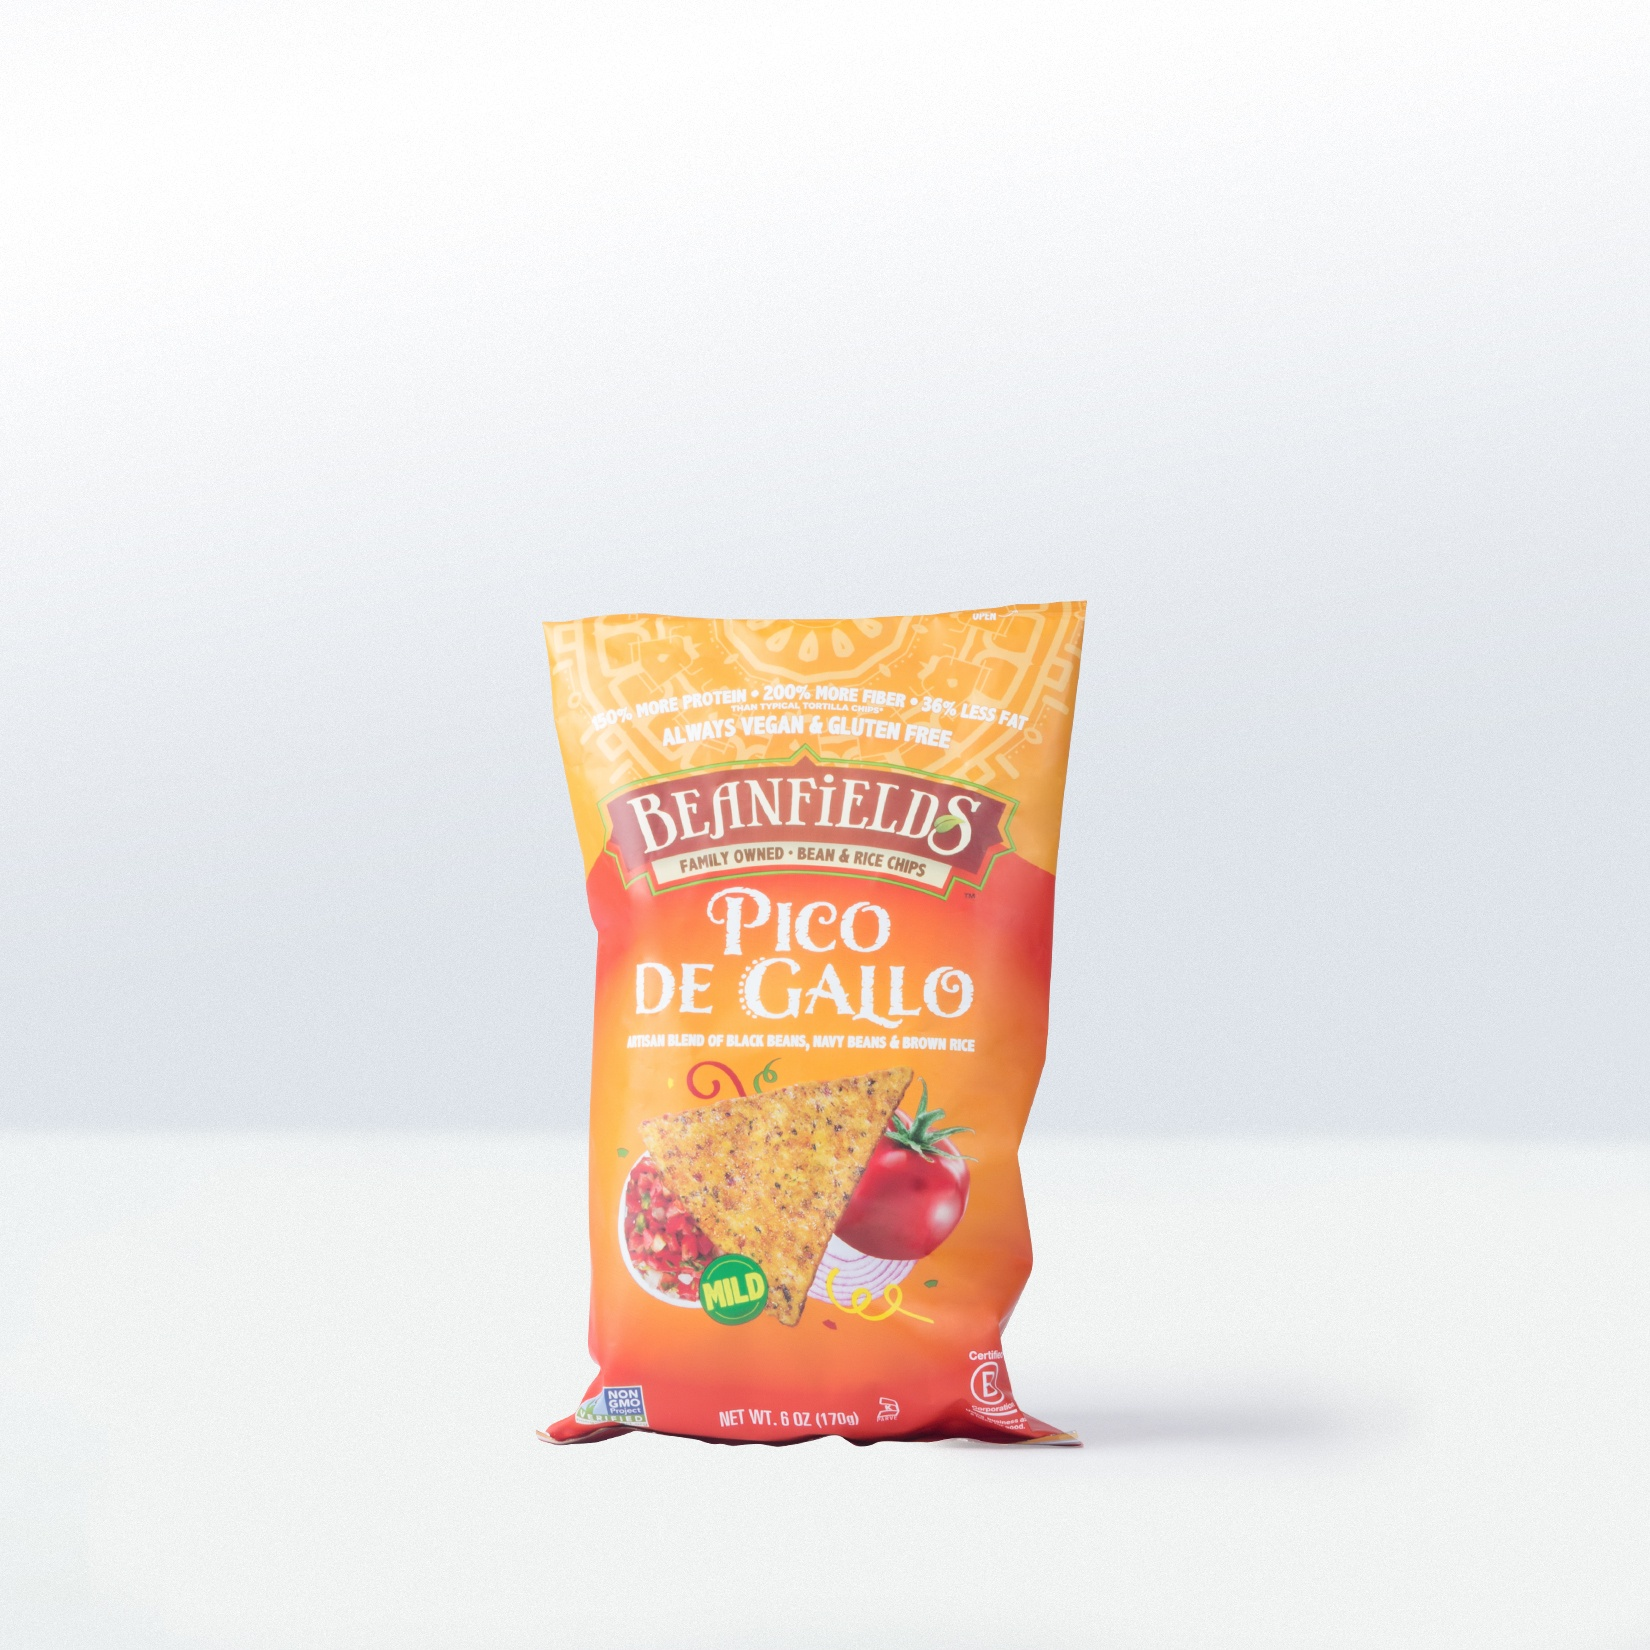 Beanfields-Pico del GalloBean and Rice Chips